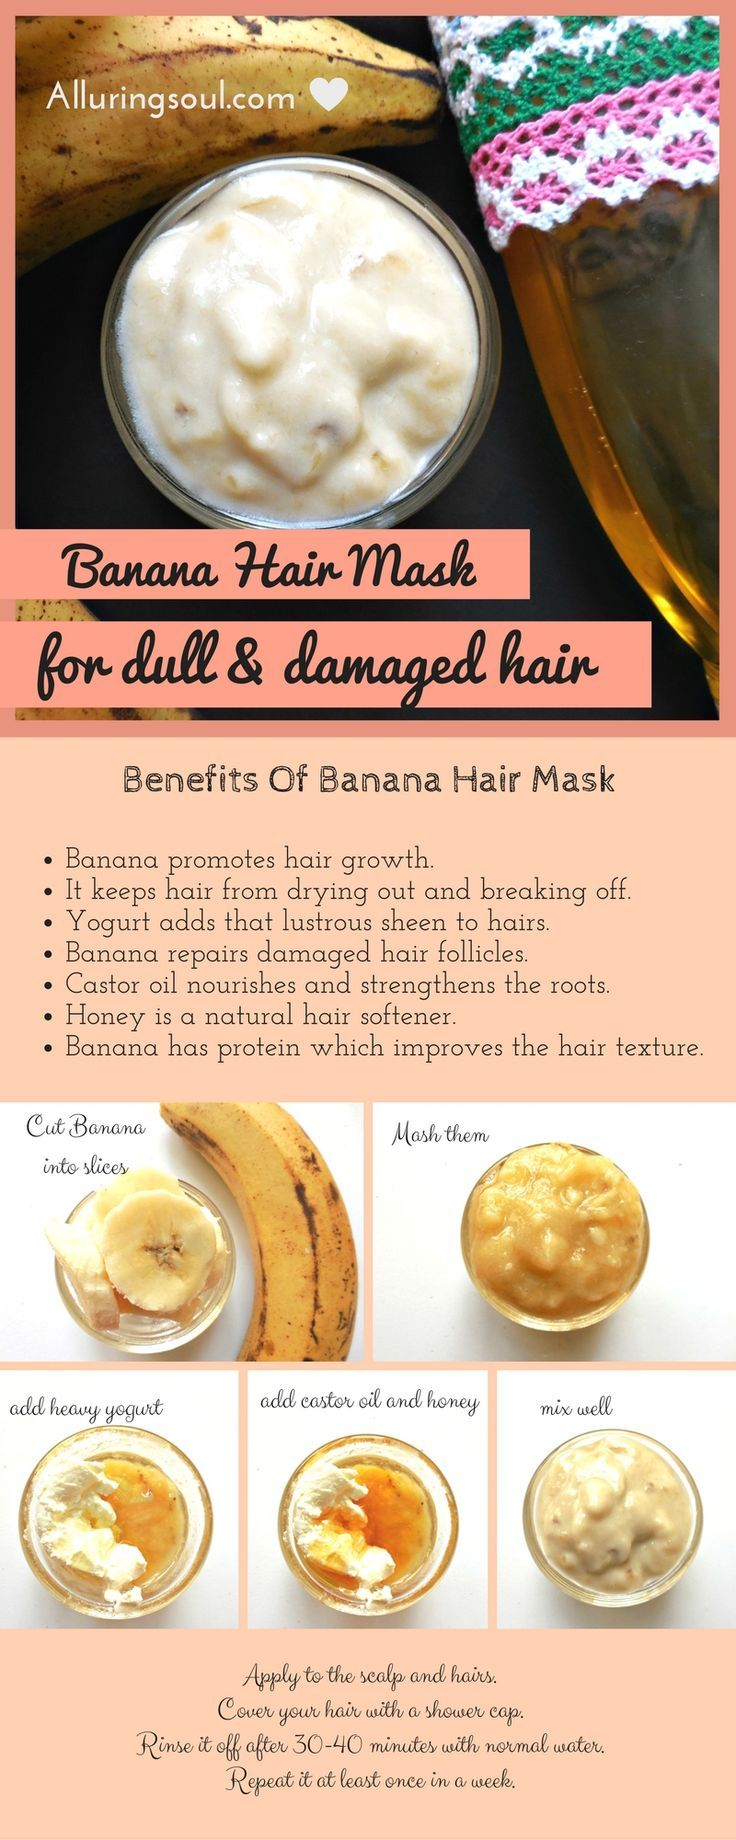 Banana Hair Mask is best for hair as it provides nutrients to the dull & damaged...